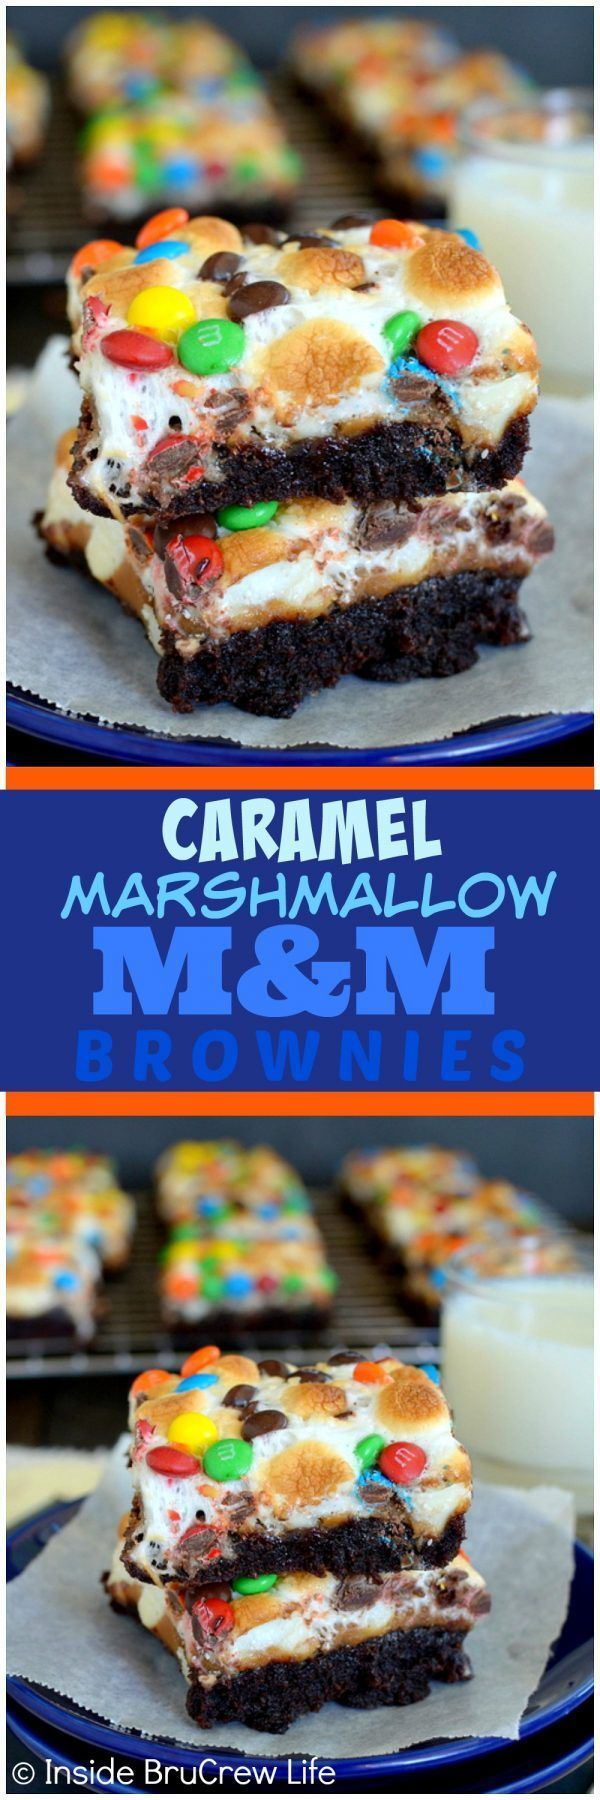 Caramel Marshmallow M&M Brownies - a layer of gooey caramel and marshmallow topped with candies make this a must make dessert recipe! #dessertfoodrecipes